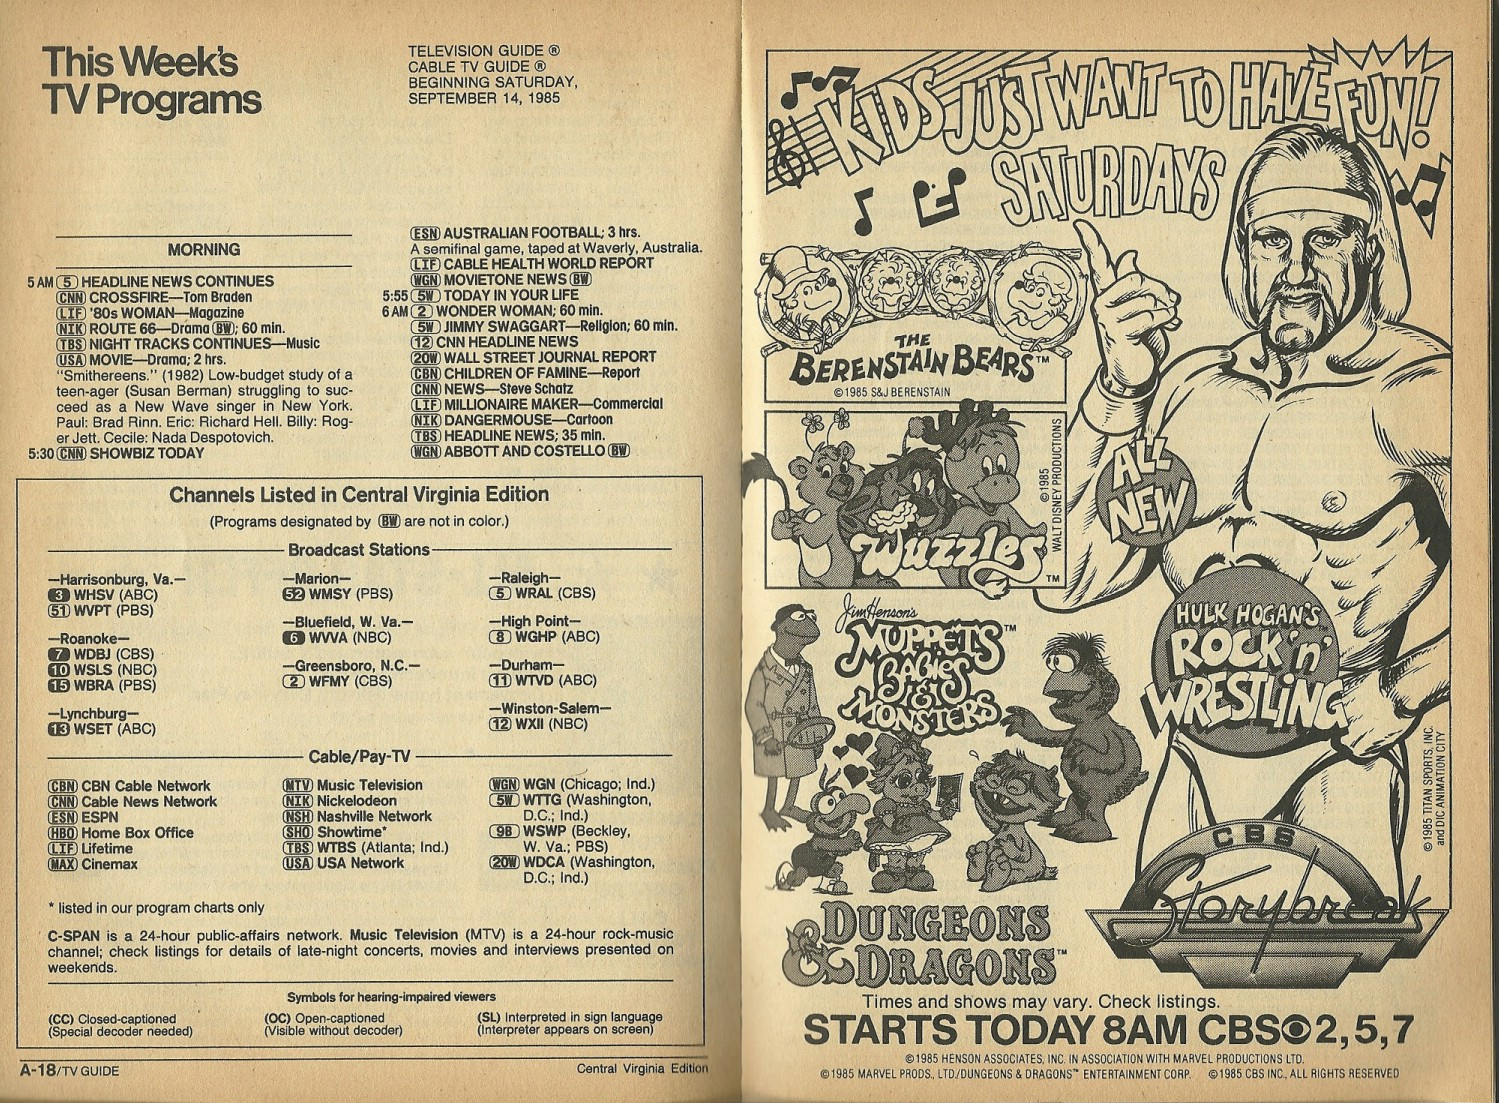 Bunched Undies: TV Guide Fall Preview - September 14, 1985